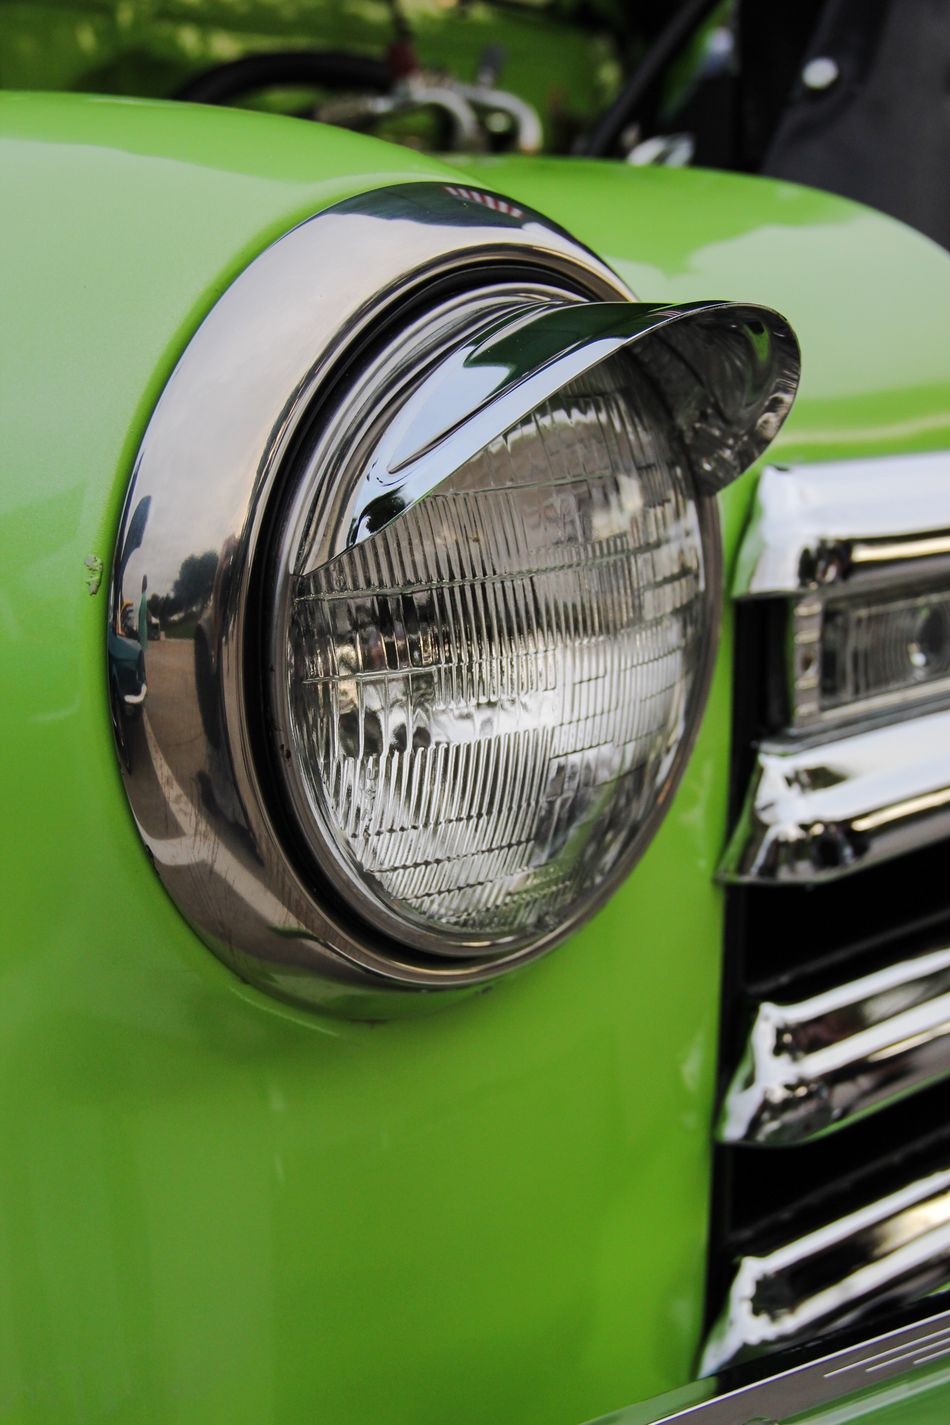 Close-up No People Day Mode Of Transport Outdoors Clean Technology Close Up Transportation Mode Of Transportation Lights Light Cars Car Custom Cars Headlights Land Vehicle PaintJob Vintage Cars Vintage Green Color Green Maximum Closeness The Drive